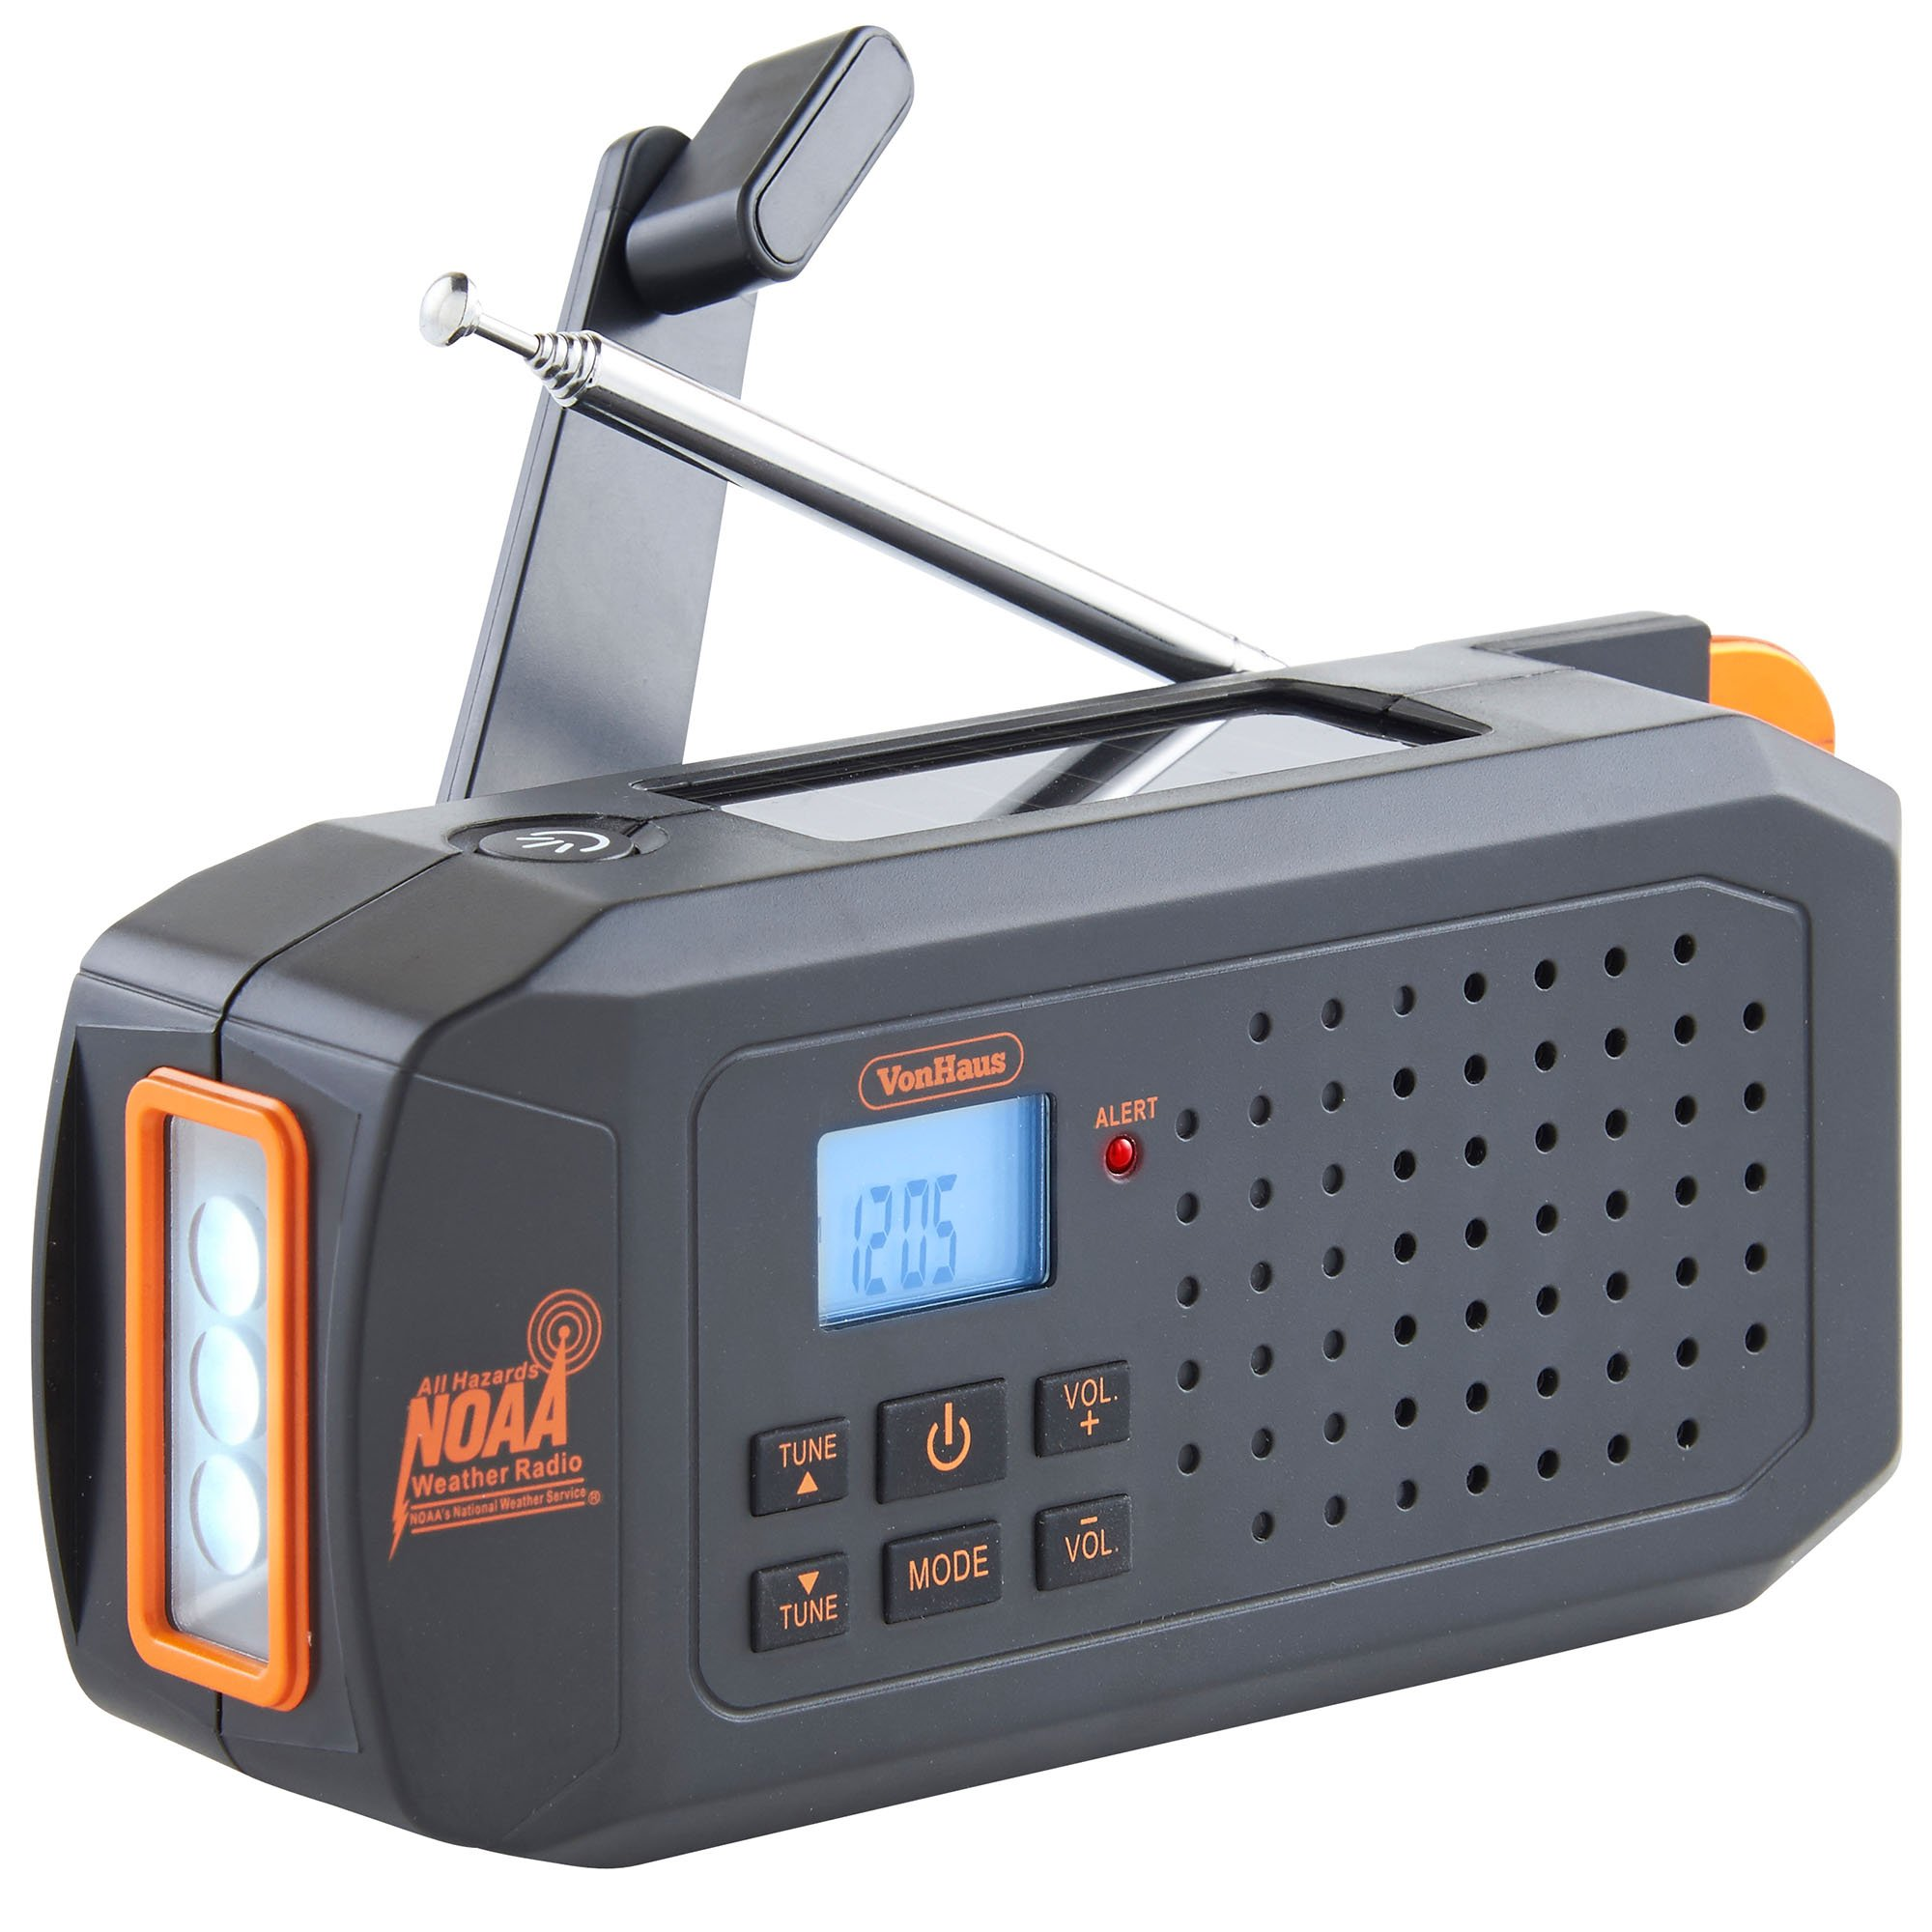 VonHaus NOAA Weather Channel Radio w/Solar, Dynamo Hand Crank & USB Charging: Portable Weather Radio AM/FM, 7 Weather Service Channels, Emergency LED Flashlight, Carabiner Clip & Cell Phone Charger by VonHaus